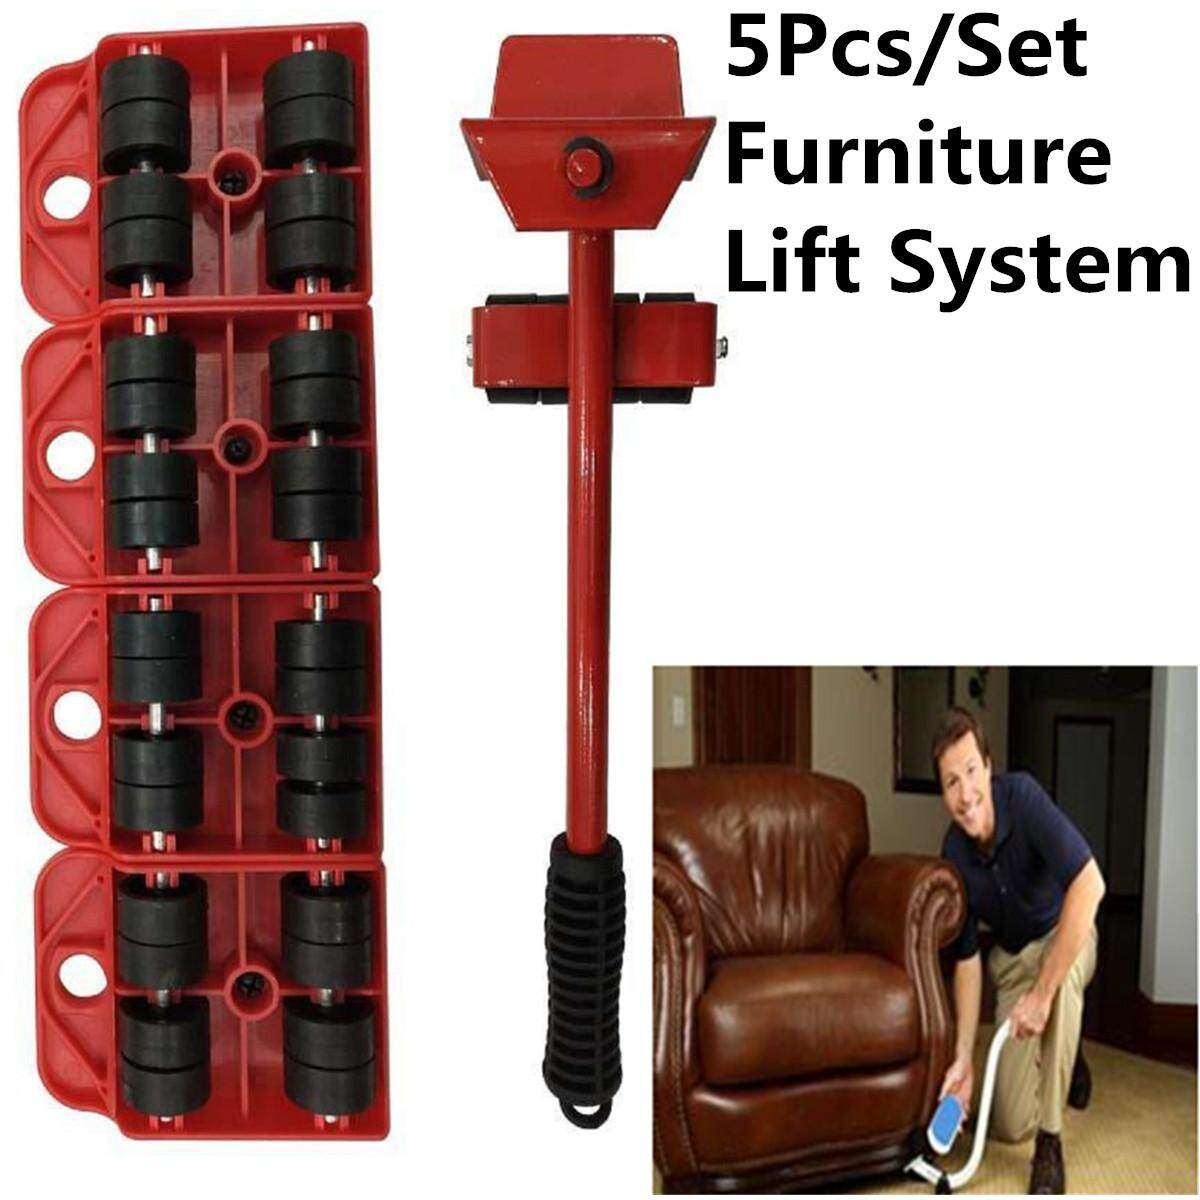 Furniture Lifter Moves Wheels Mover Sliders Kit Home Moving Lifting System